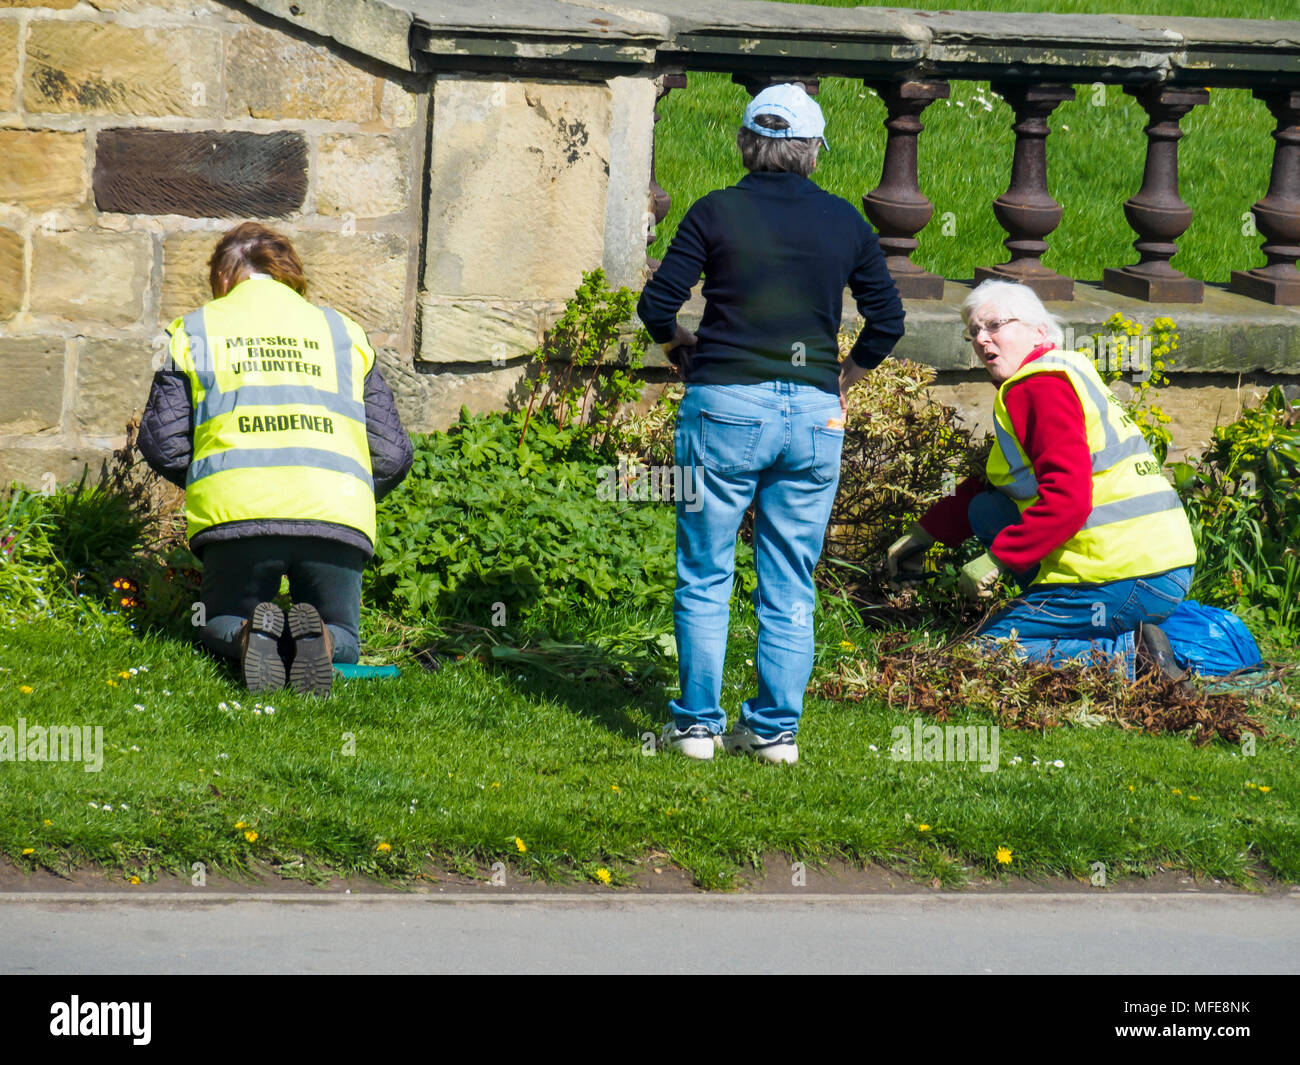 Volunteer gardeners working on a Community garden in North Yorkshire prior to the judging of the Annual Northumbria in Bloom competition - Stock Image